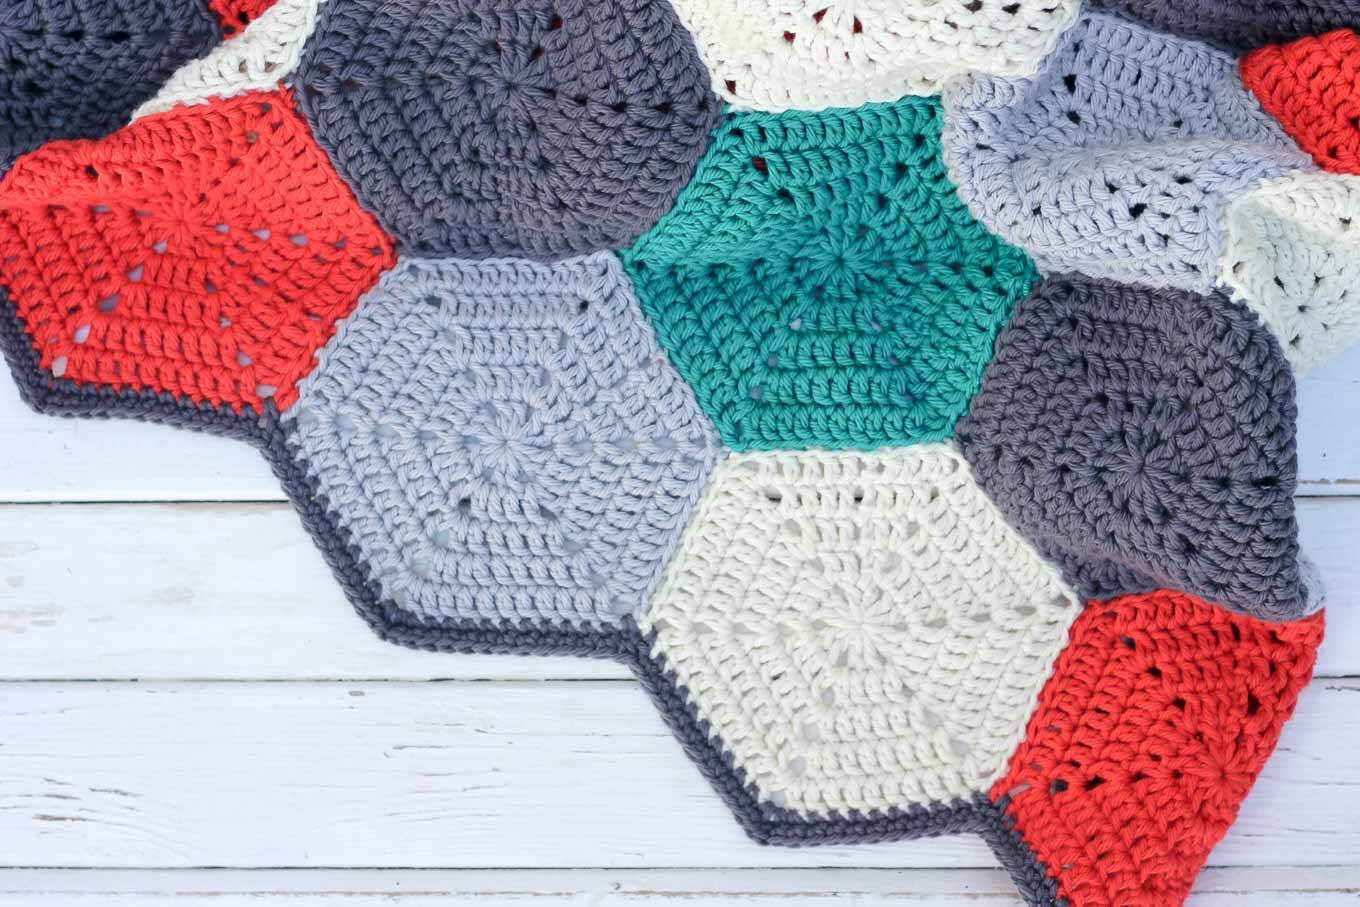 Crocheting Granny Squares Together Video : Join Crochet Hexagons, Granny Squares Or Other Crochet Pieces Together ...